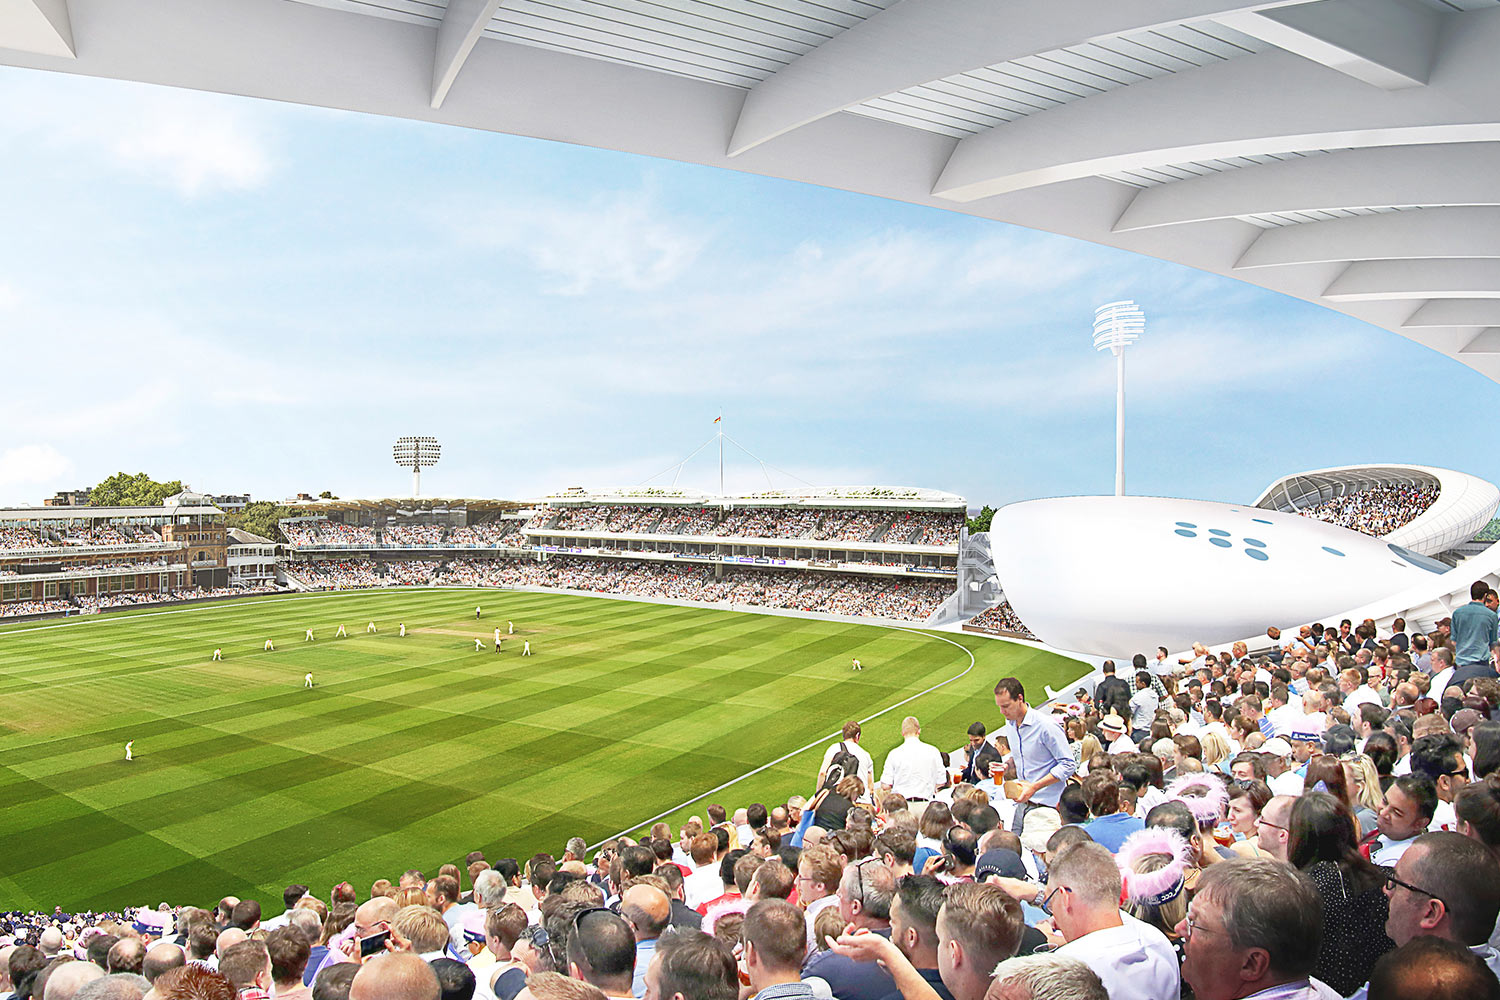 View from the stands at Lords Cricket Ground